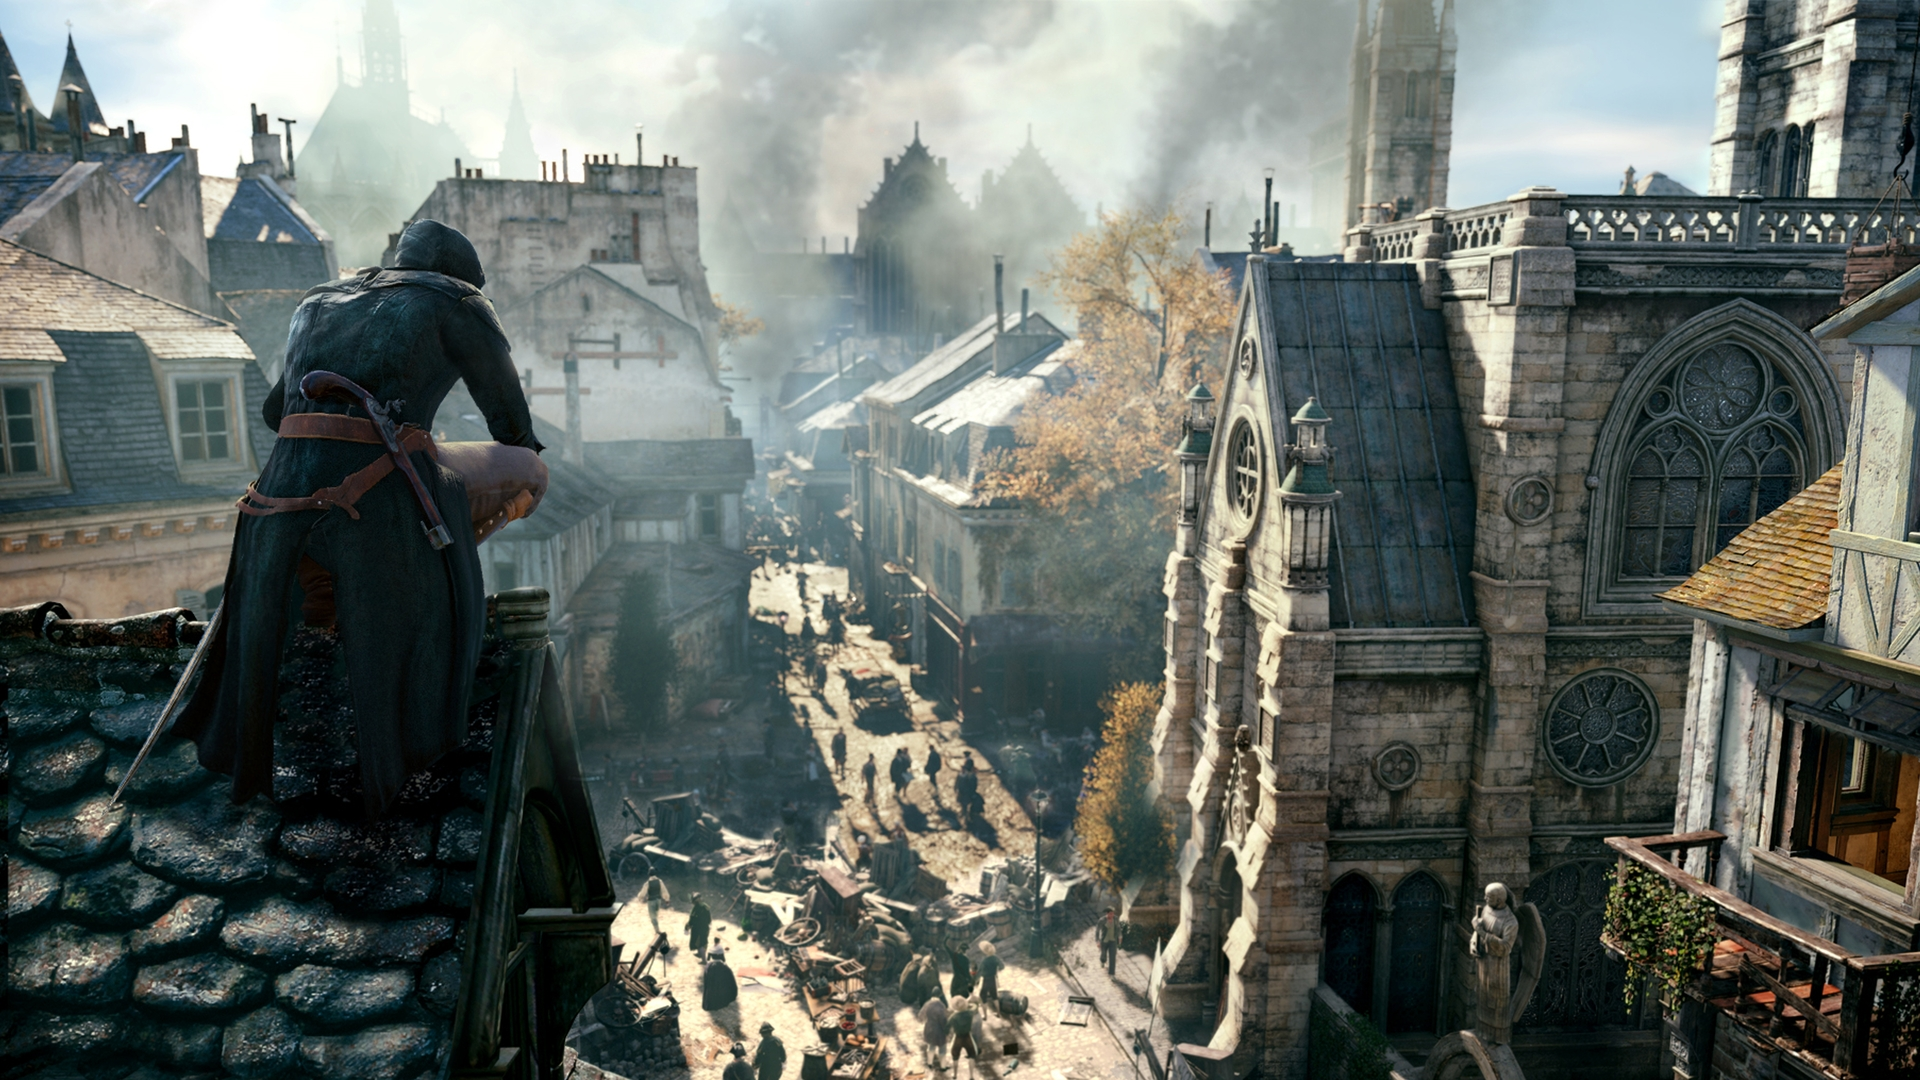 1920x1080 Assassins Creed Unity Dlc 3 Secrets Of The Revolution Images, Photos, Reviews